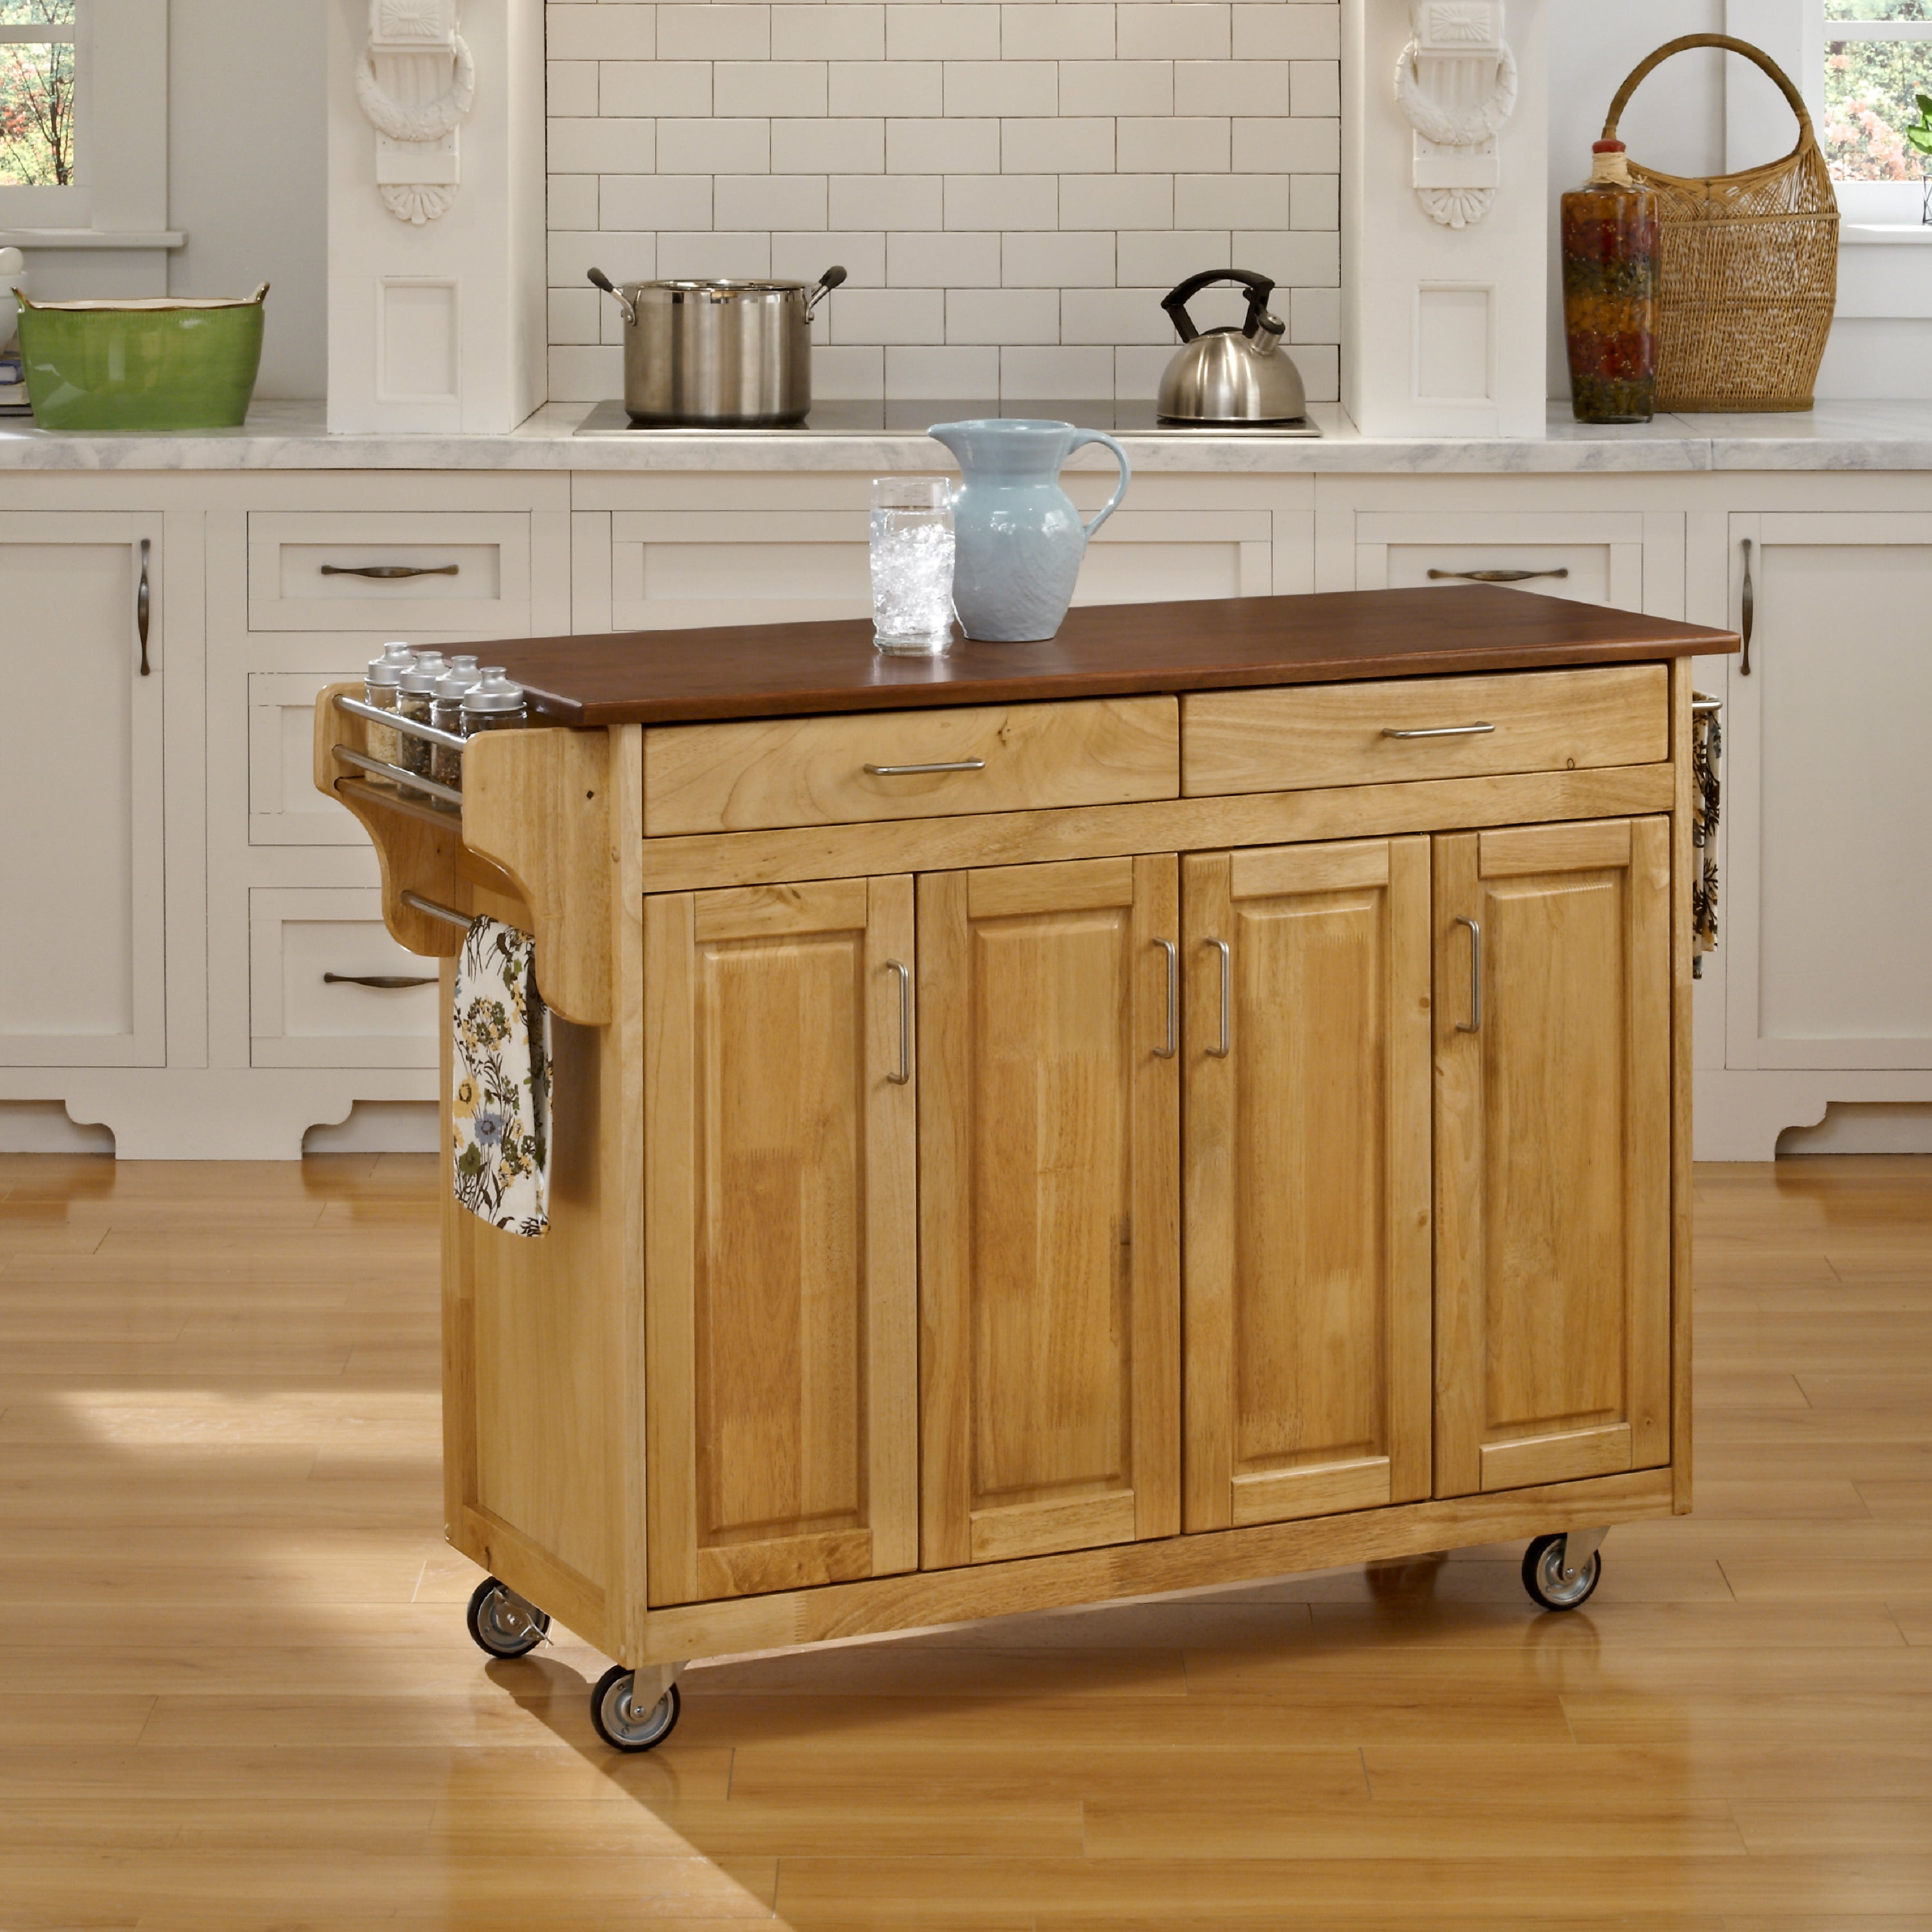 Gracewood Hollow Defoe Natural Finish with Oak Top Kitchen Cart